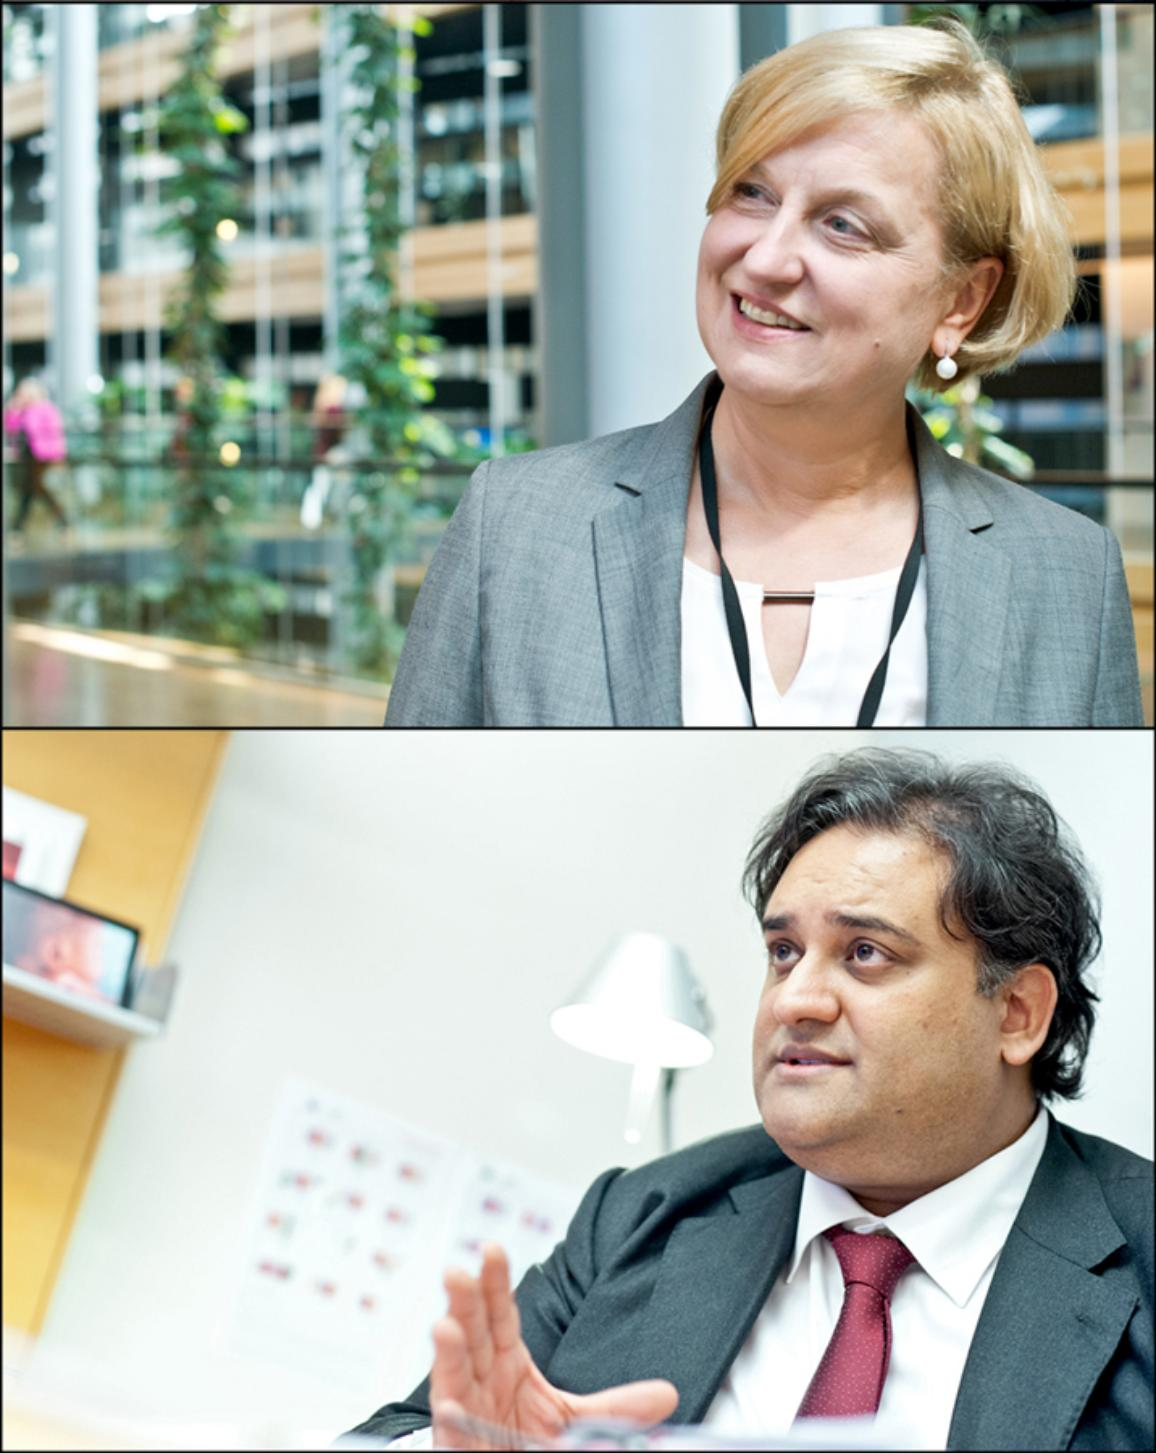 Double interview with Anna Elżbieta Fotyga and Claude Moraes